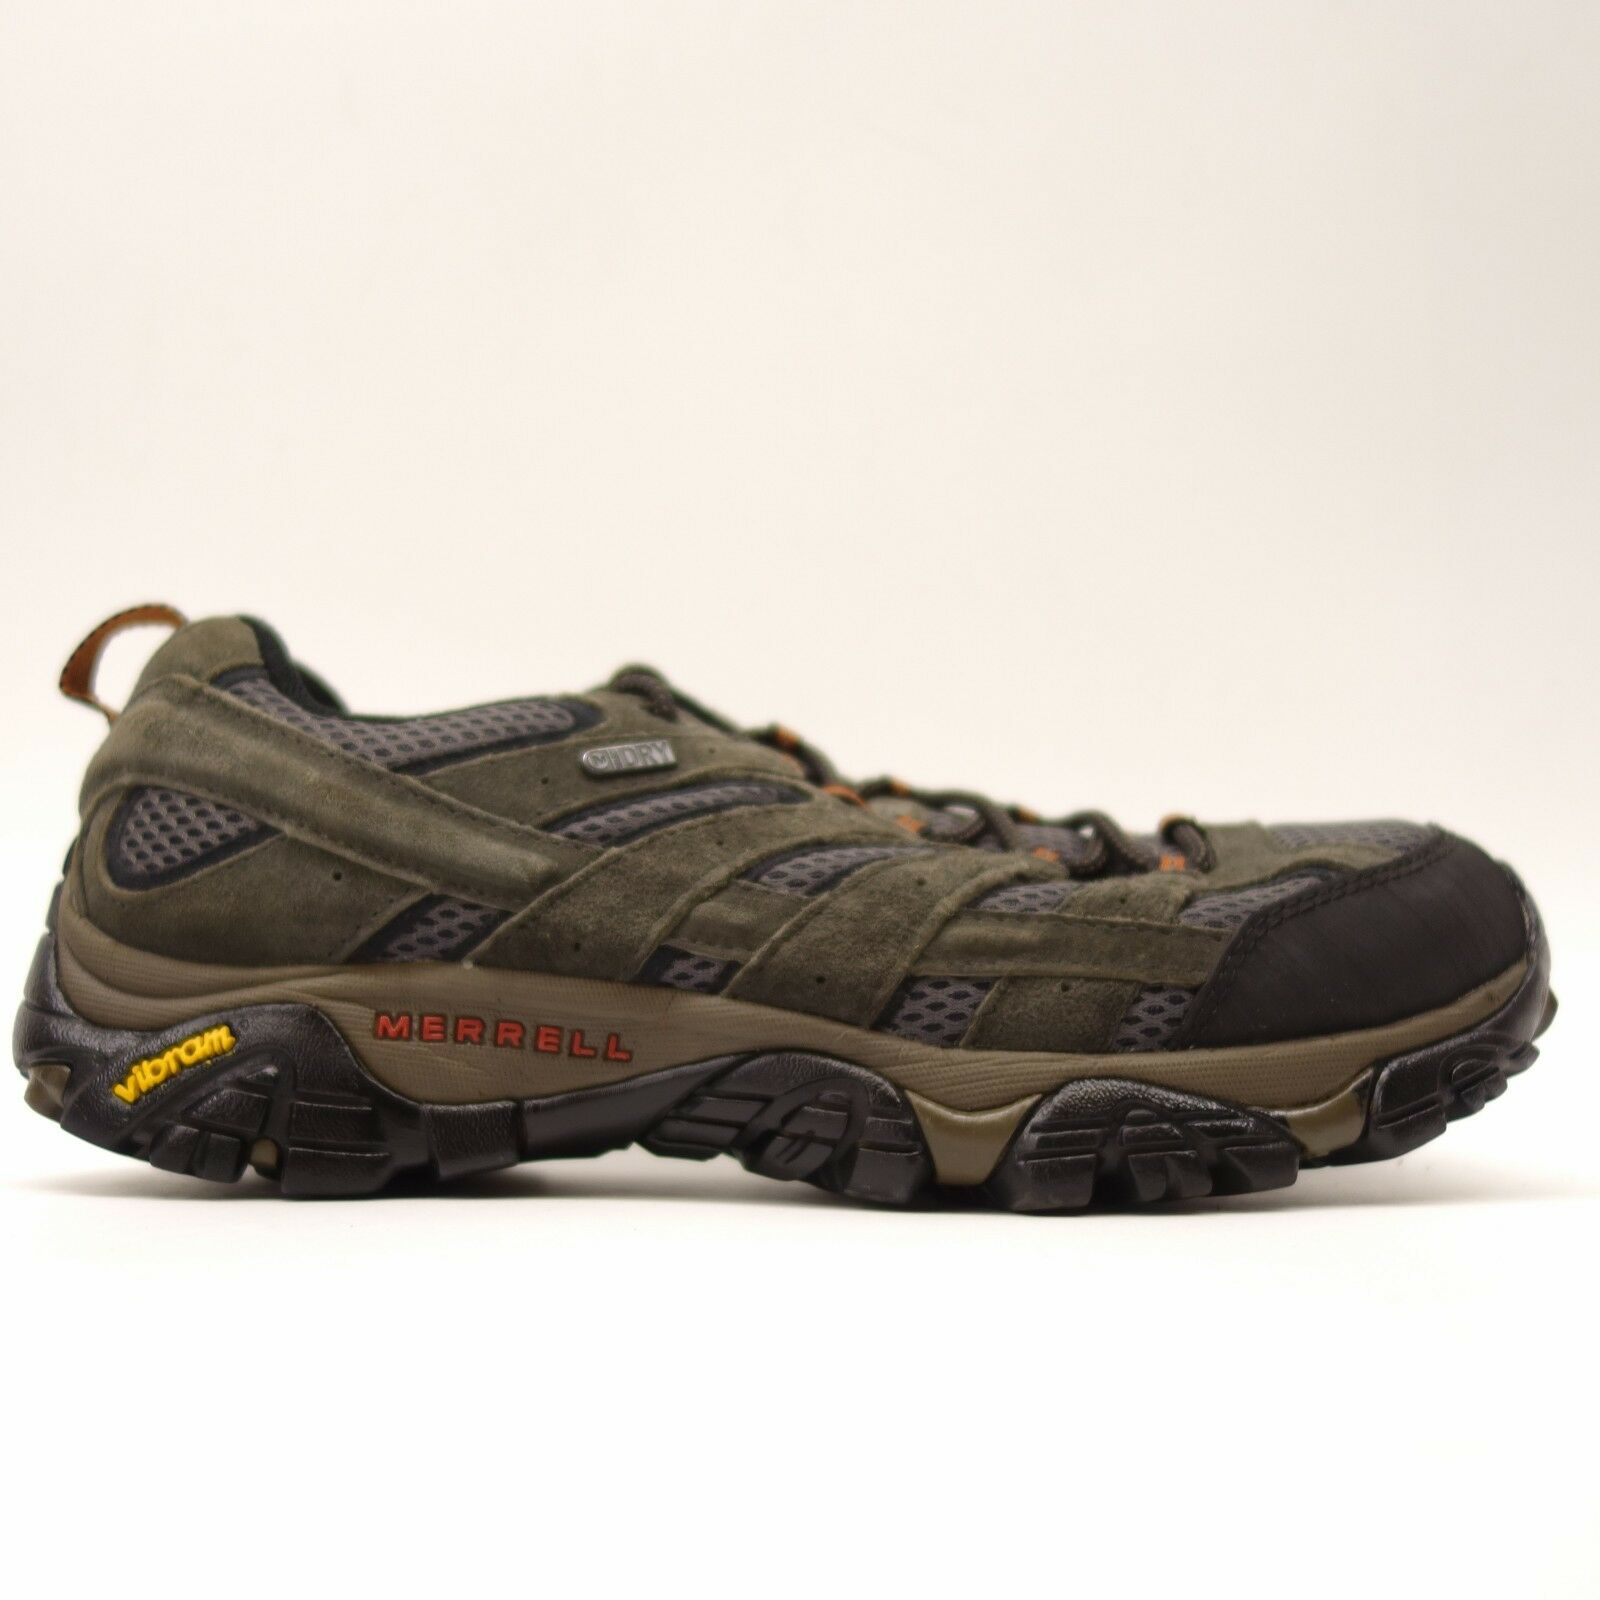 80632fe4ed Merrell Mens Moab 2 Low Waterproof Athletic Support Hiking Trail shoes Size  9.5. Nike React Element 55 Olive ...